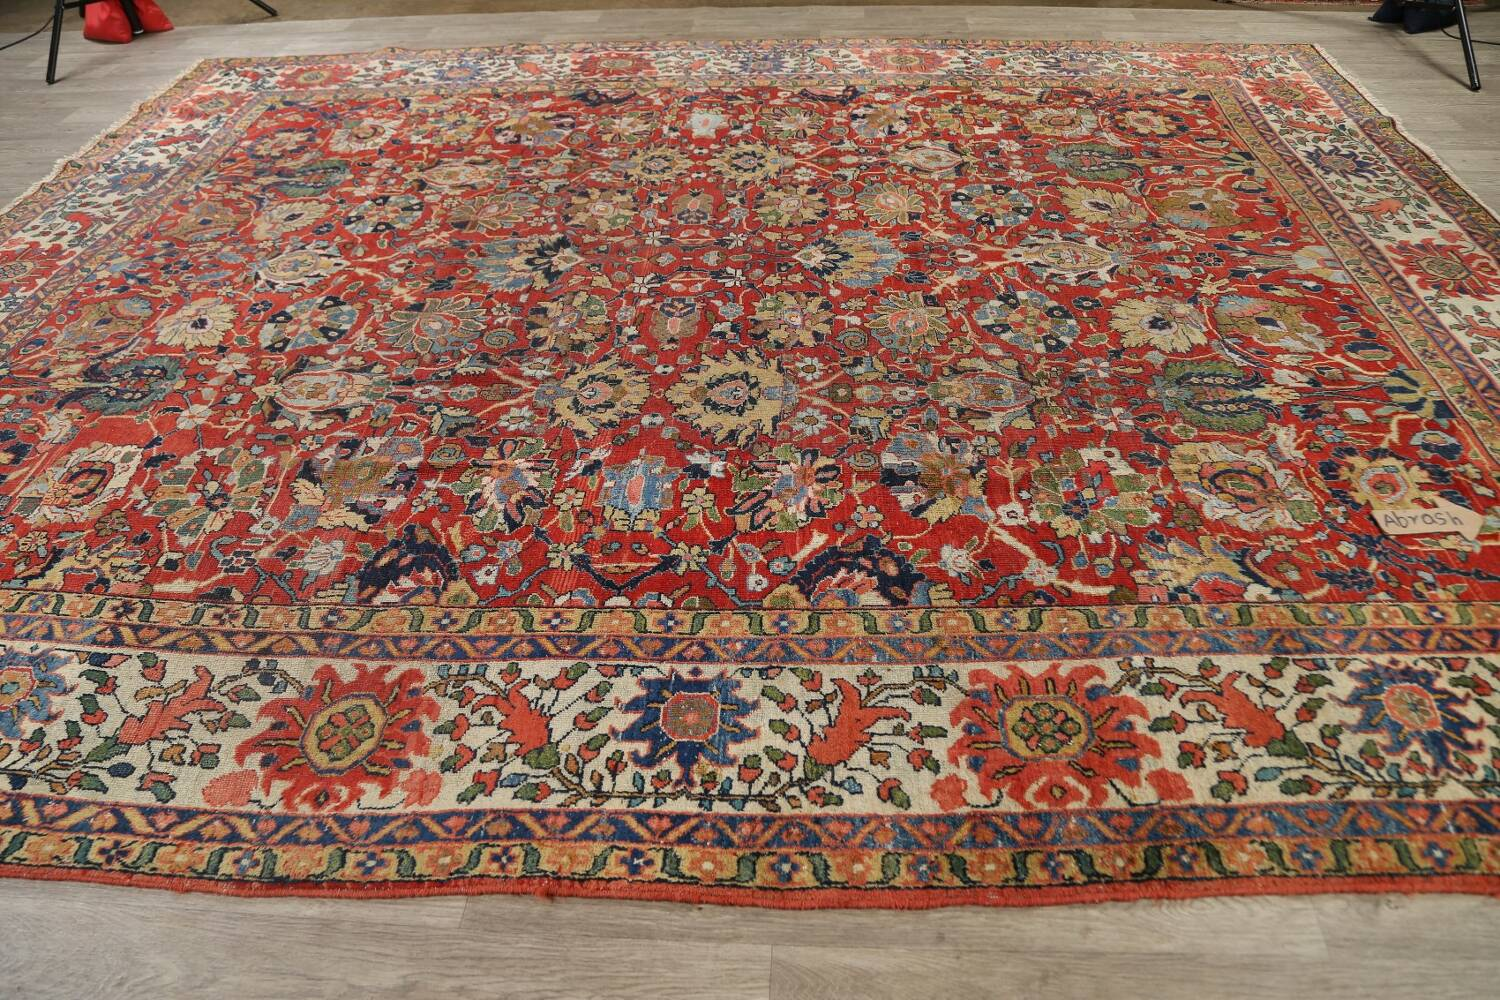 Pre-1900 Vegetable Dye Sultanabad Persian Area Rug 10x13 image 15